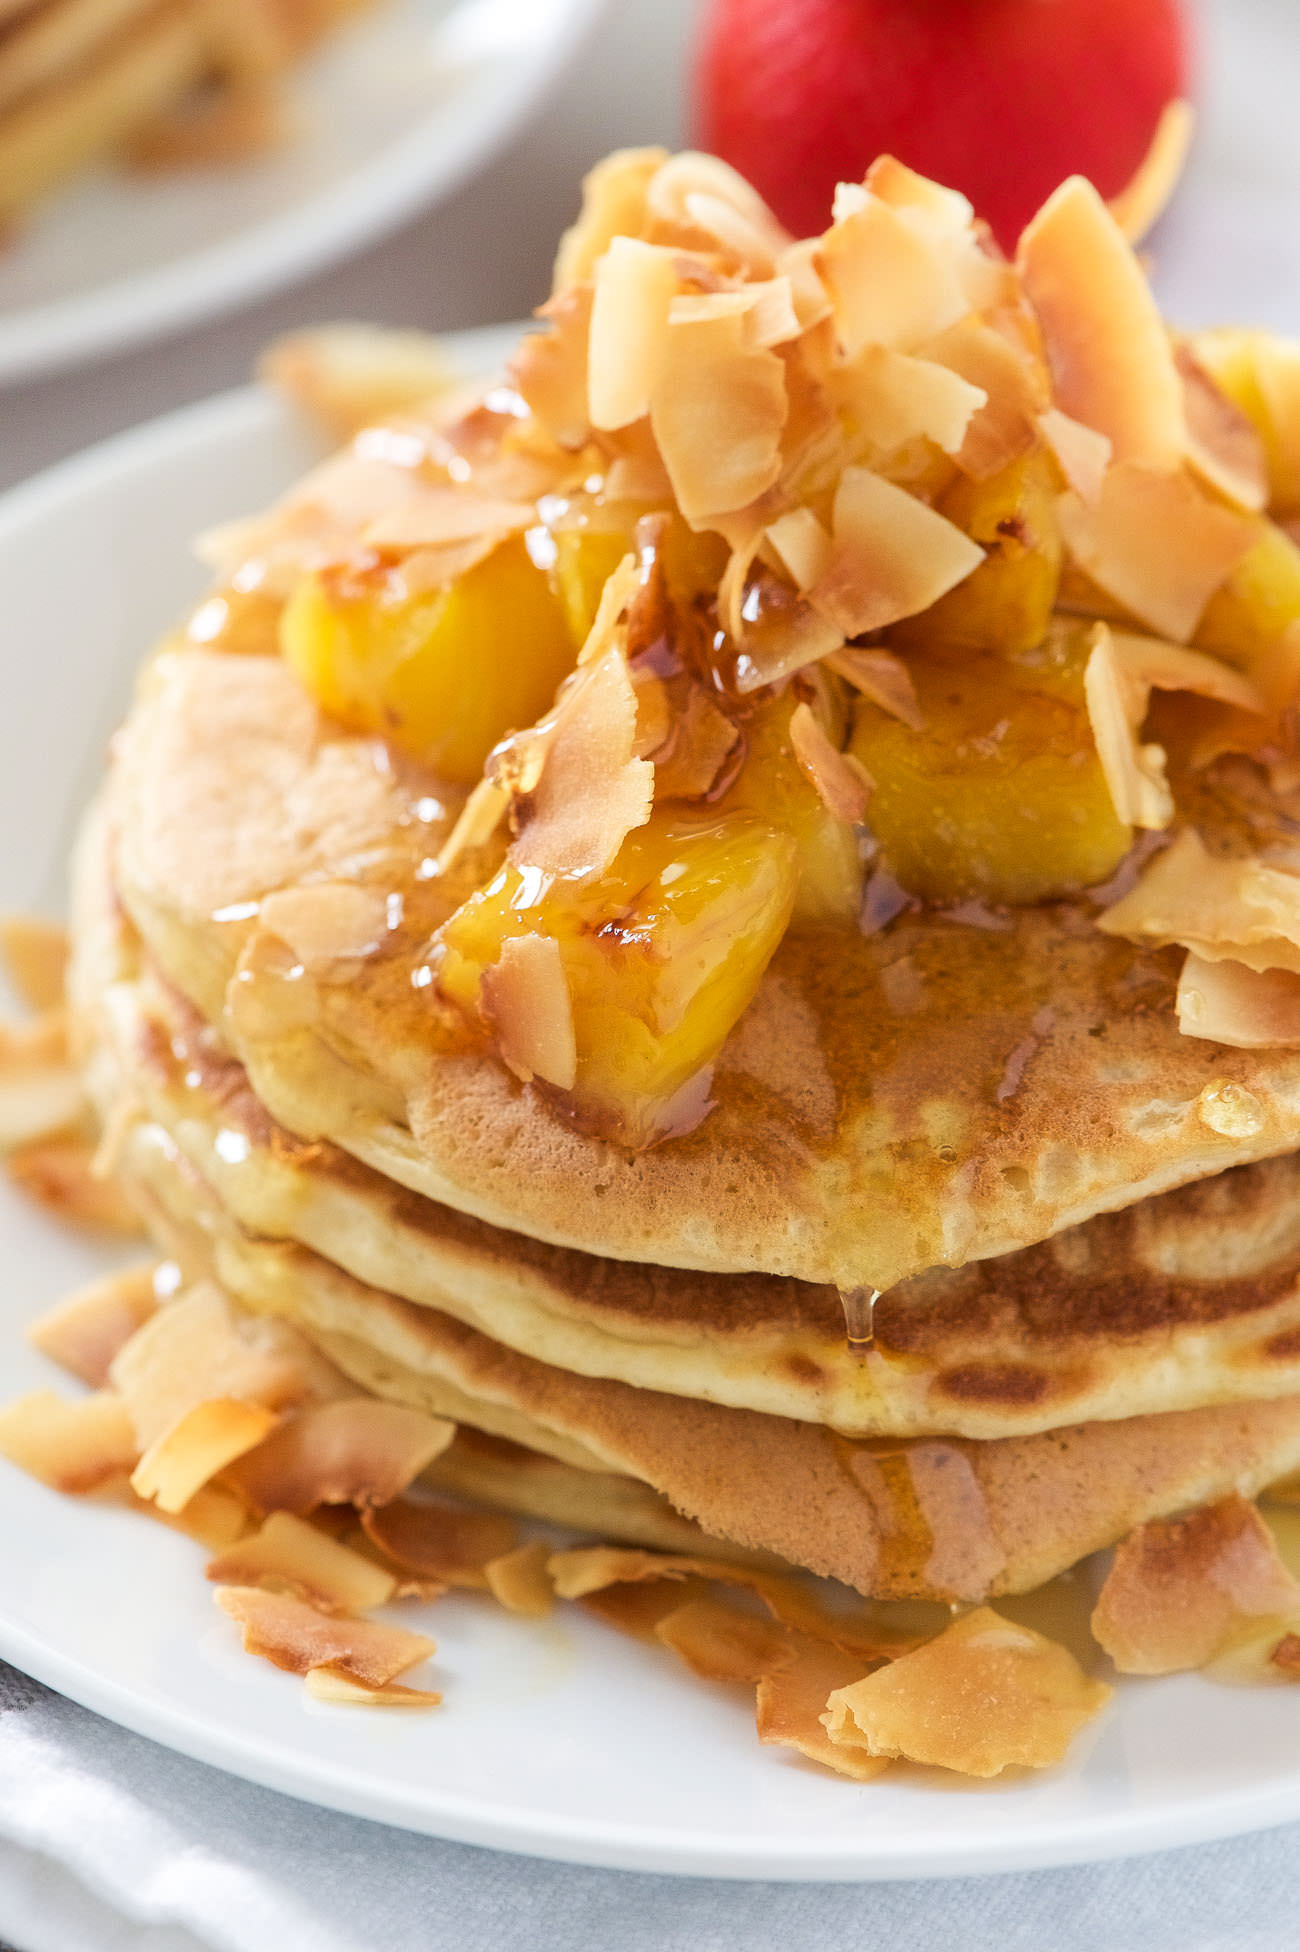 These Honey Pineapple and Toasted Coconut Pancakes are light, fluffy and filled with tropical flavors! These pancakes are the perfect start to a weekend breakfast or brunch!